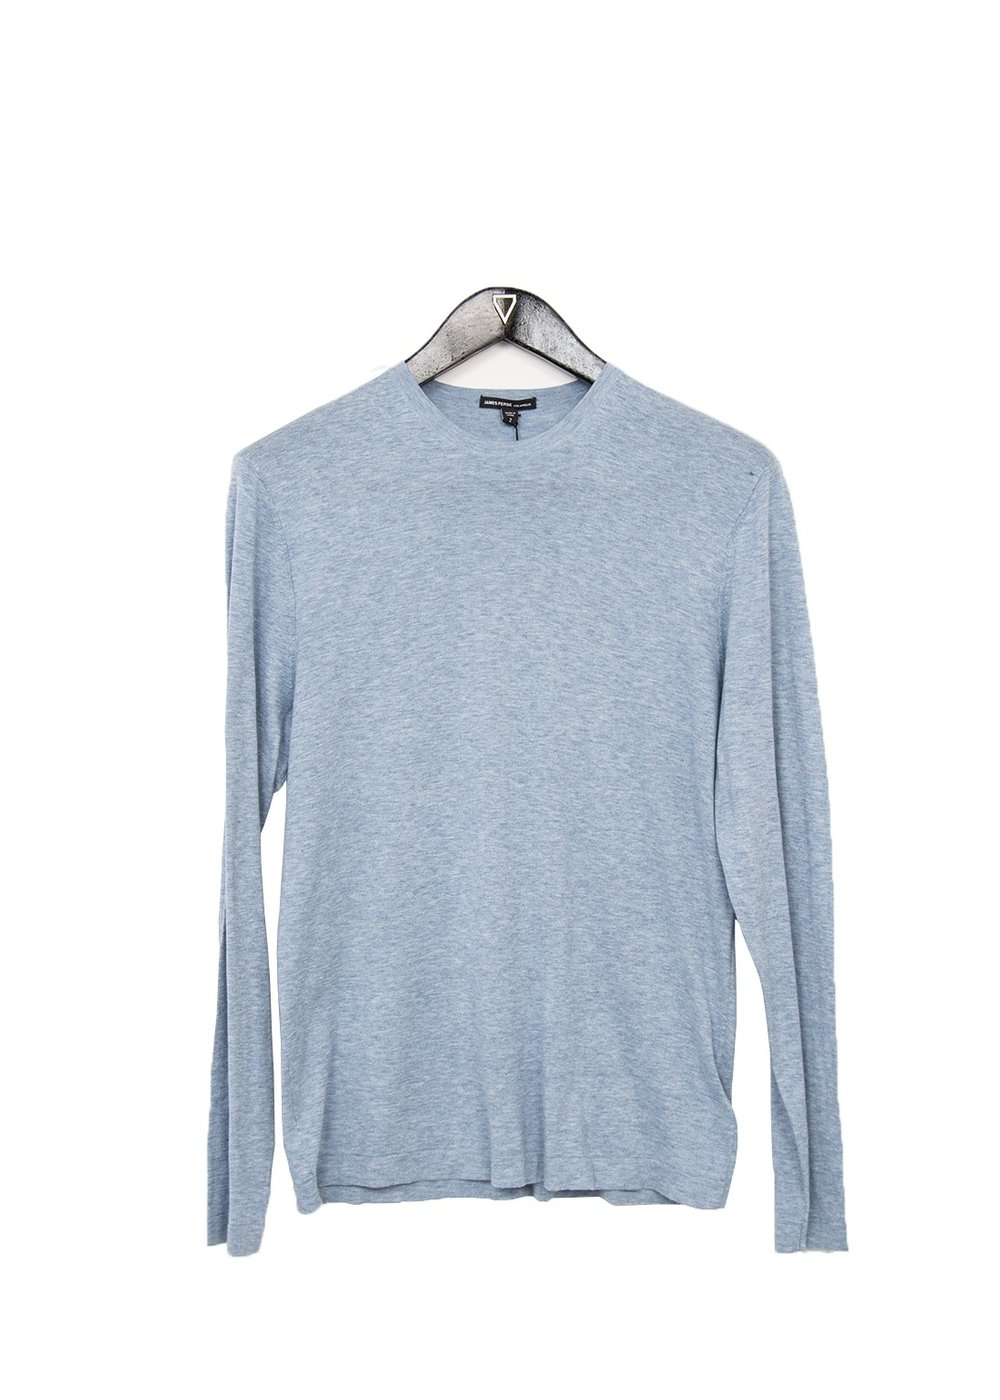 "JAMES PERSE SWEATER ""PERSE-KNT"